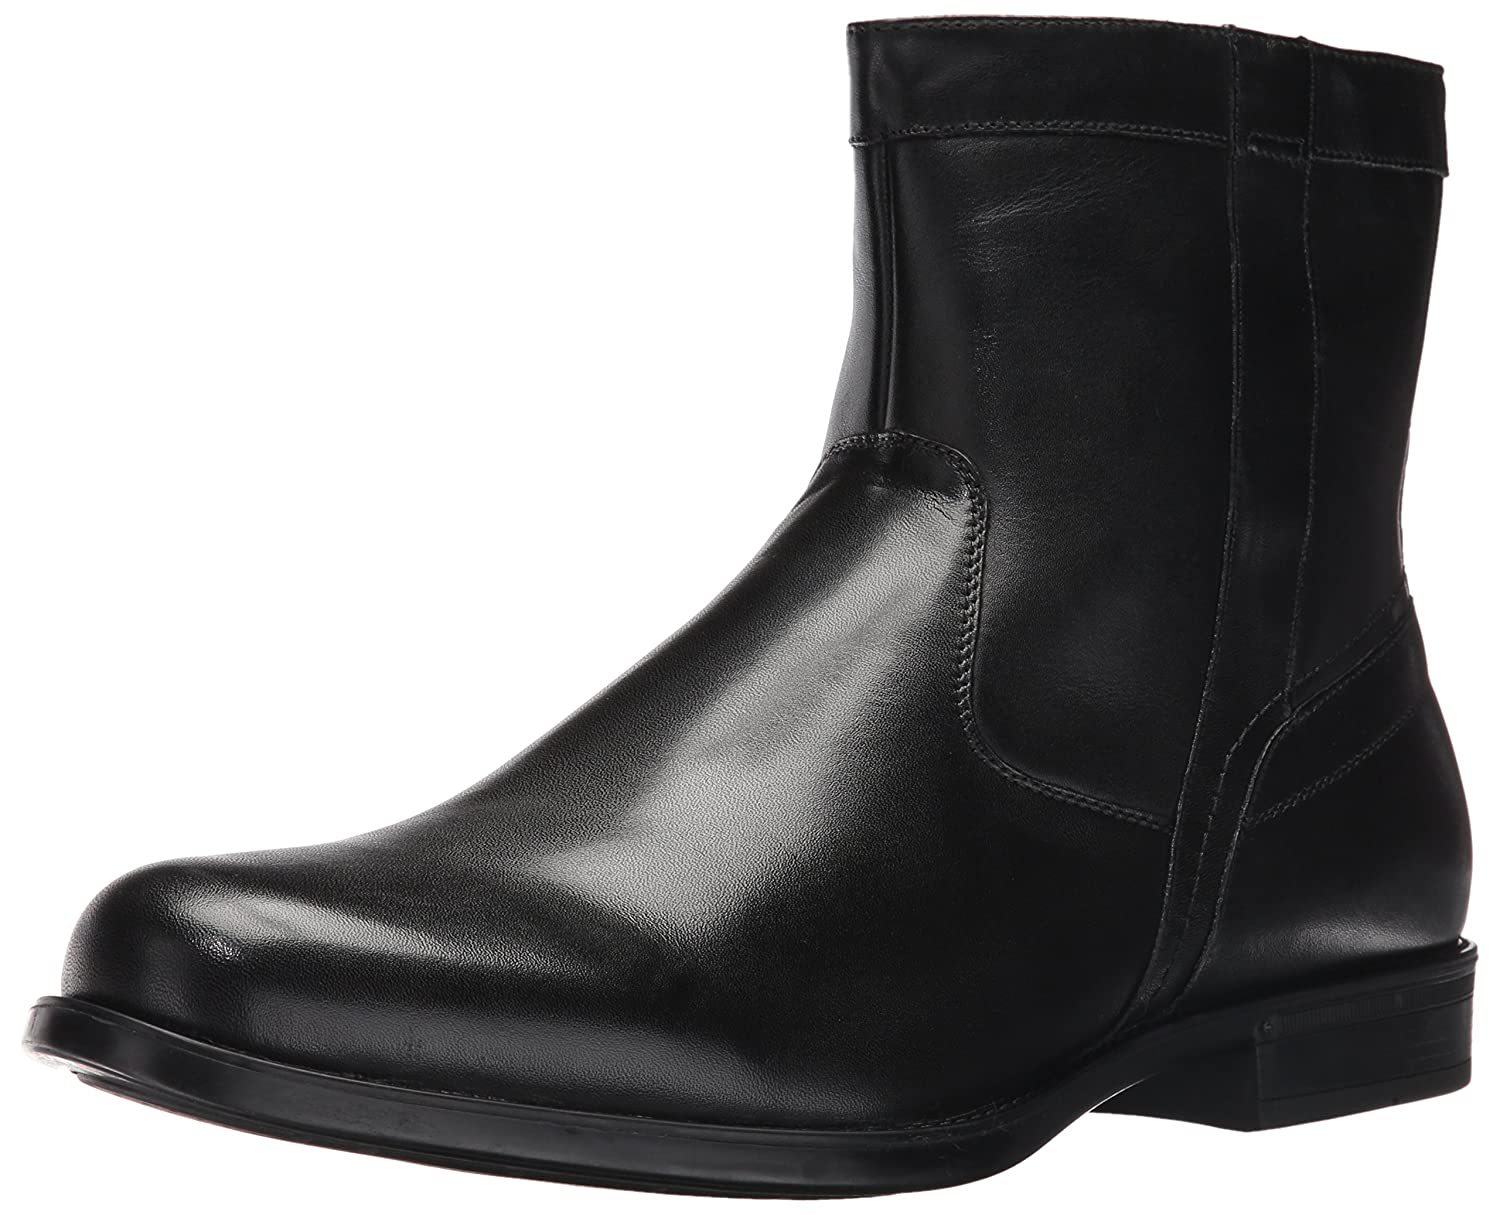 66306ee2b78 Florsheim Men s Medfield Plain Toe Zip Boot Fashion